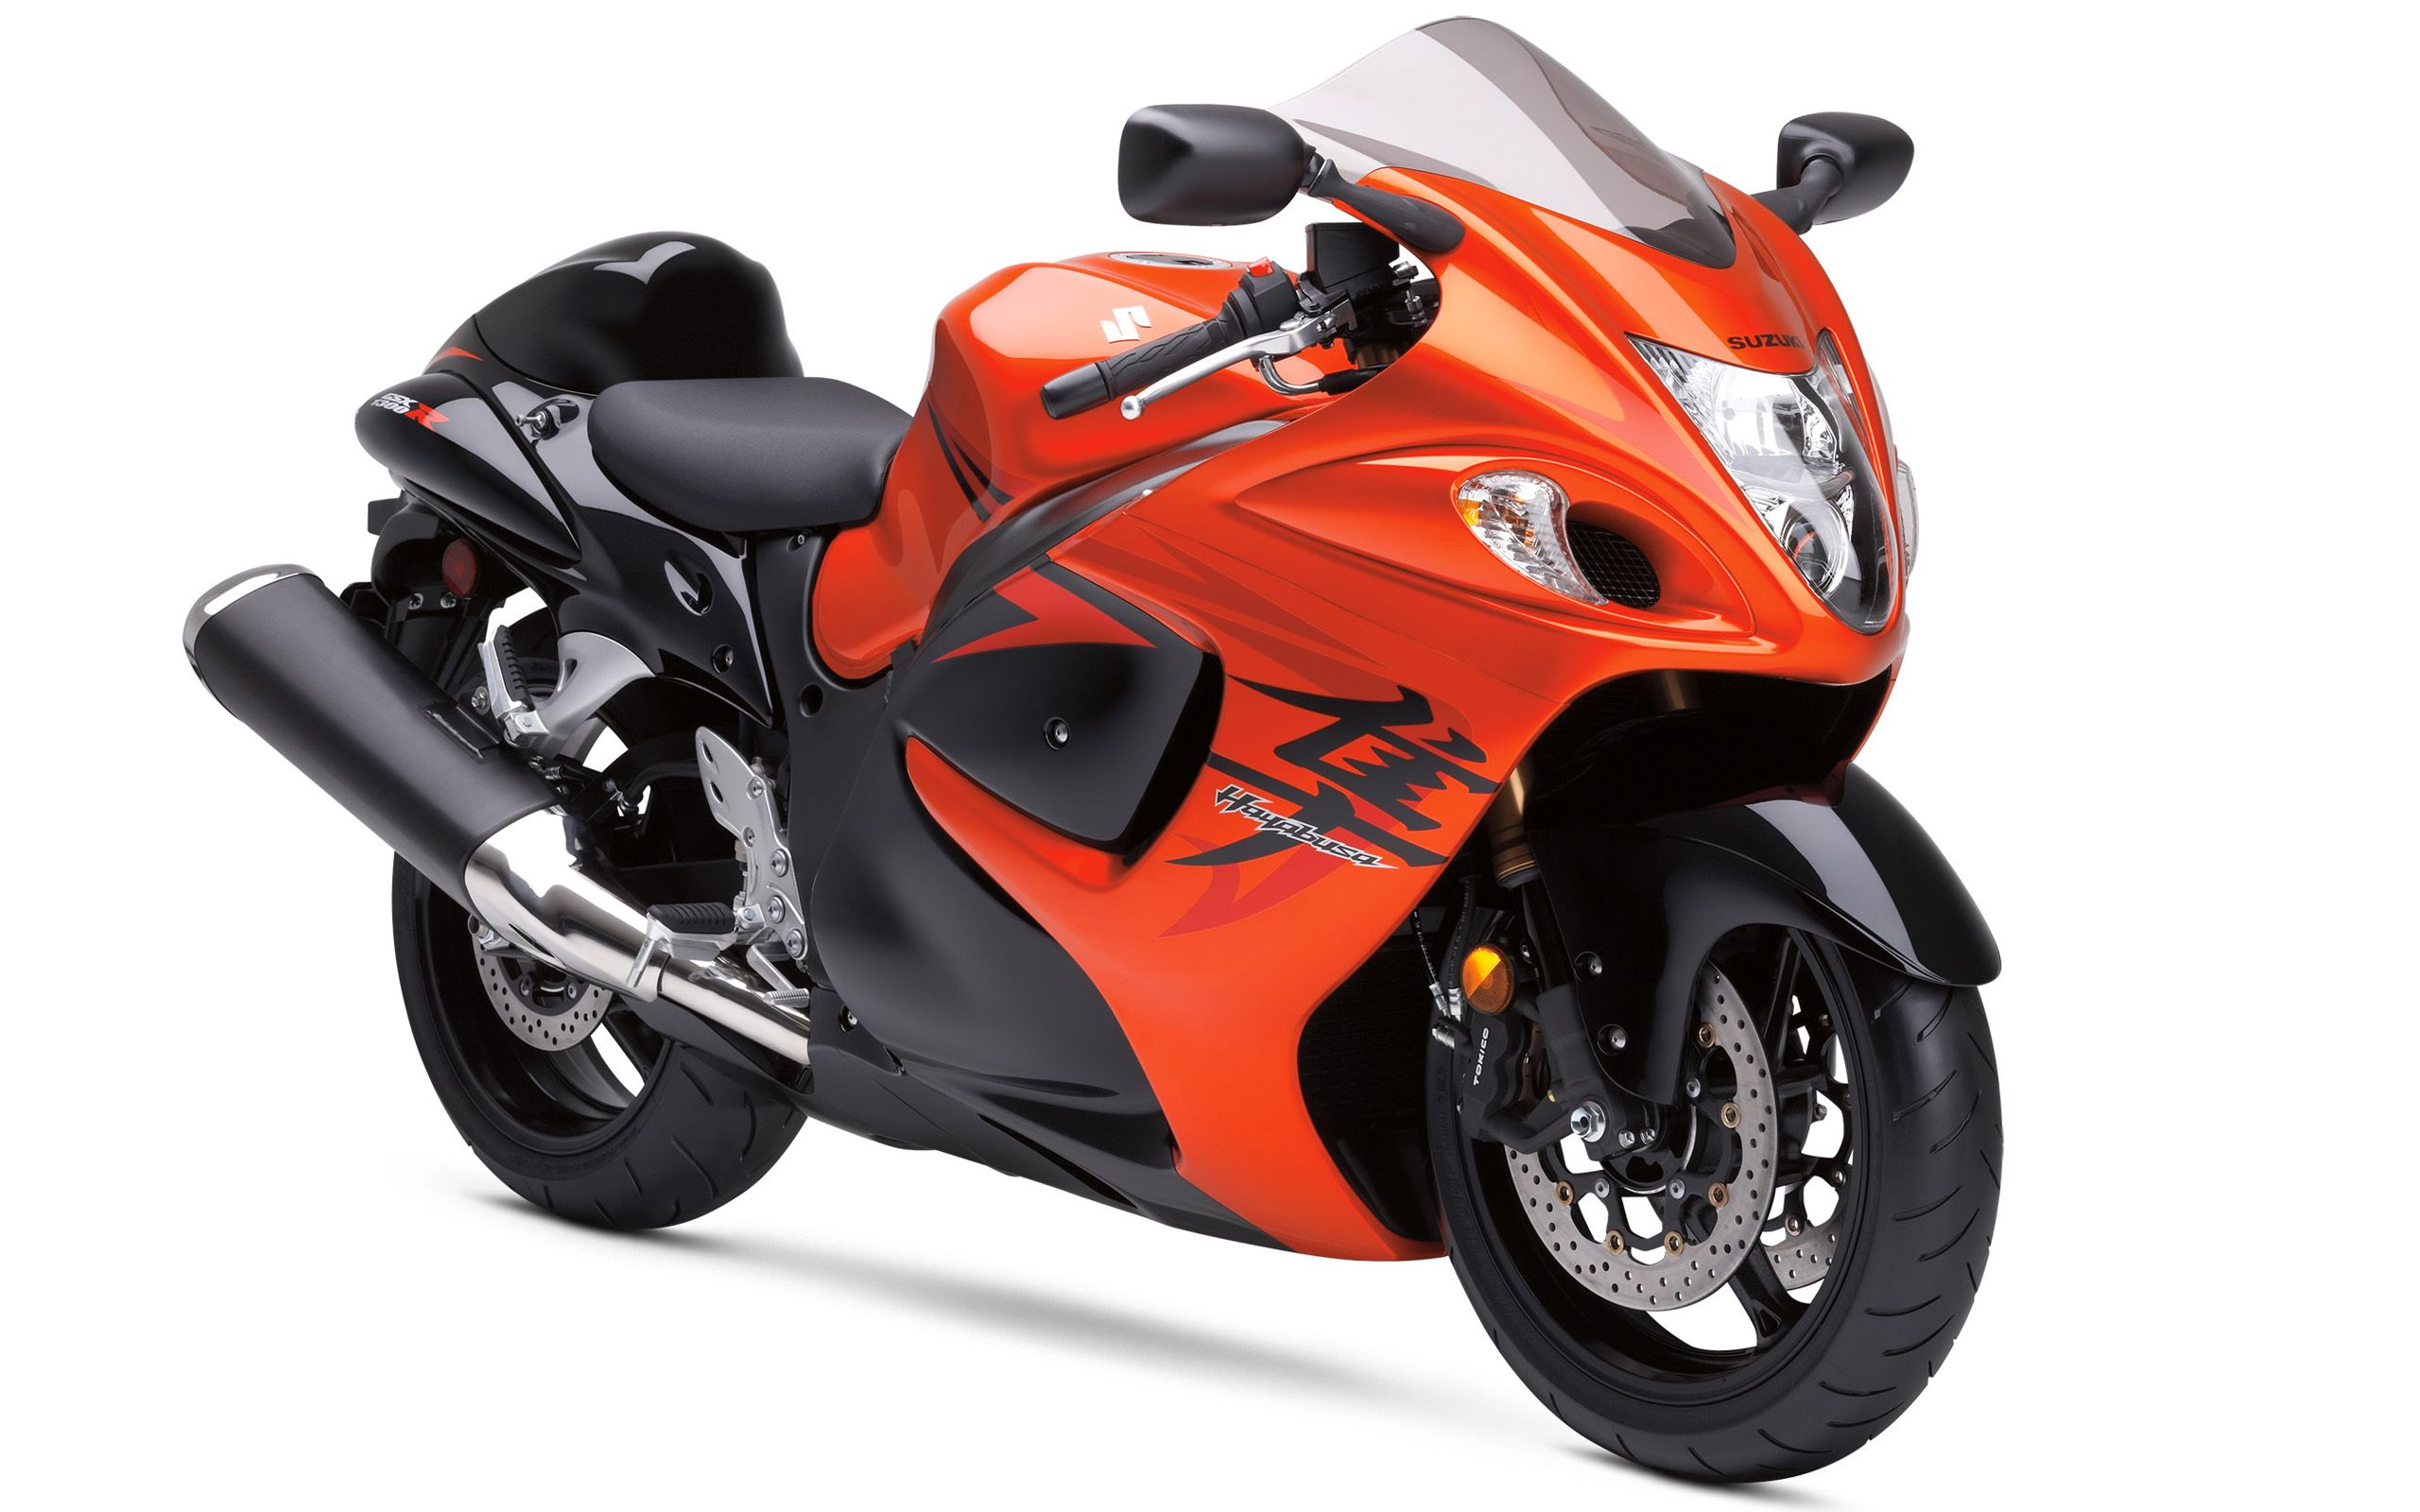 Suzuki hayabusa orange bike wallpaper hd http imashon com w